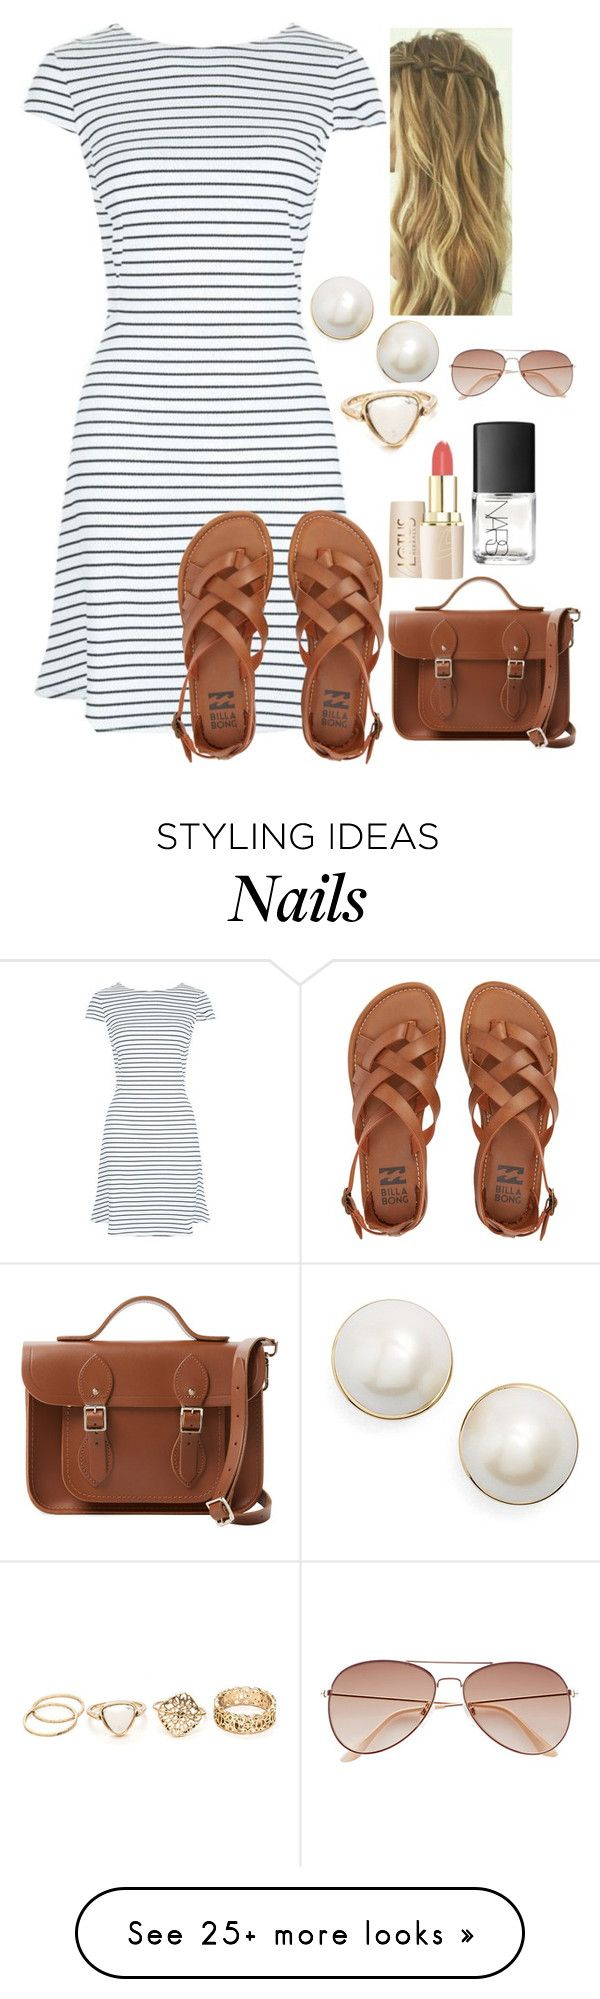 """What do you love to do?"" by jasietote on Polyvore featuring Billabong, Kate Spade, The Cambridge Satchel Company, NARS Cosmetics and H&M"